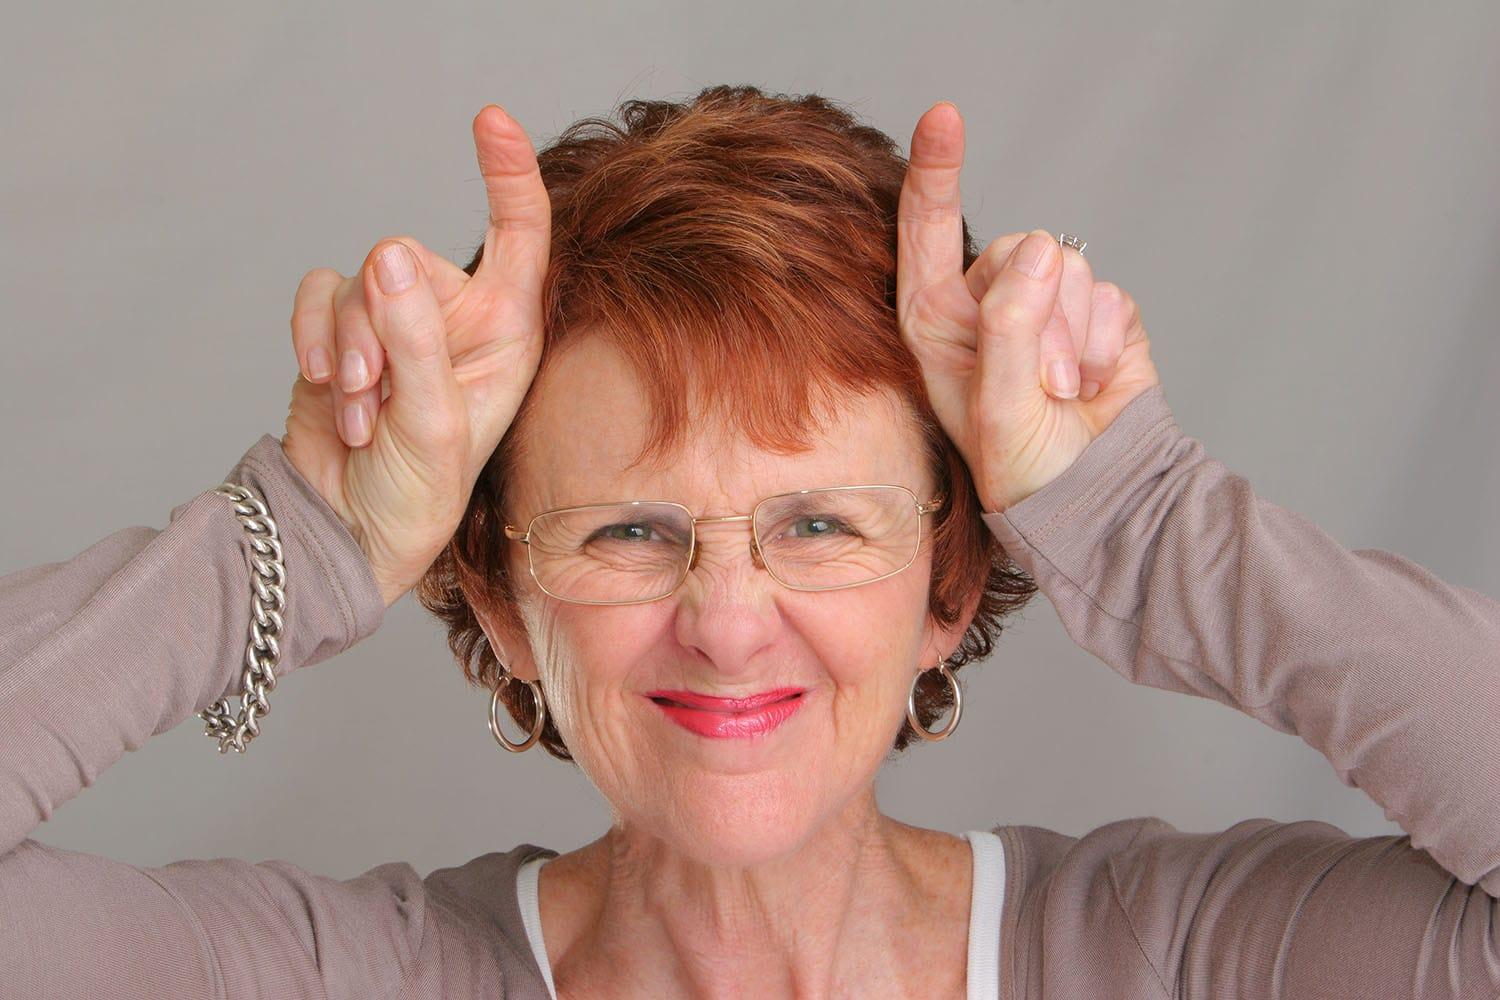 Woman simulating horns with her fingers